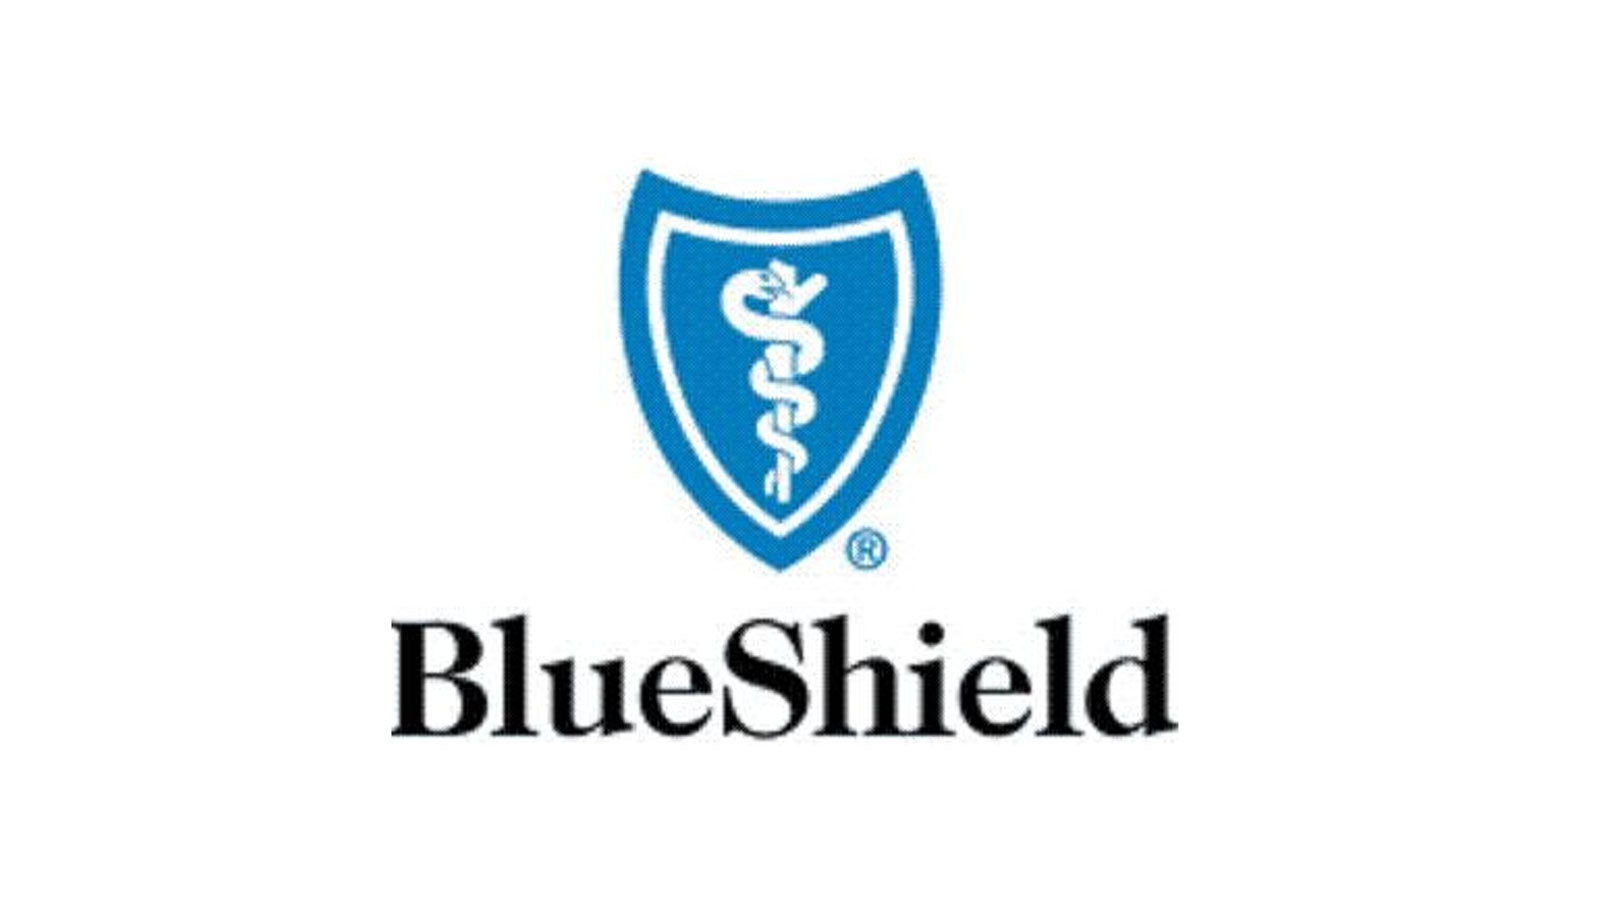 Blue Shield of California's state tax-exempt status is revoked